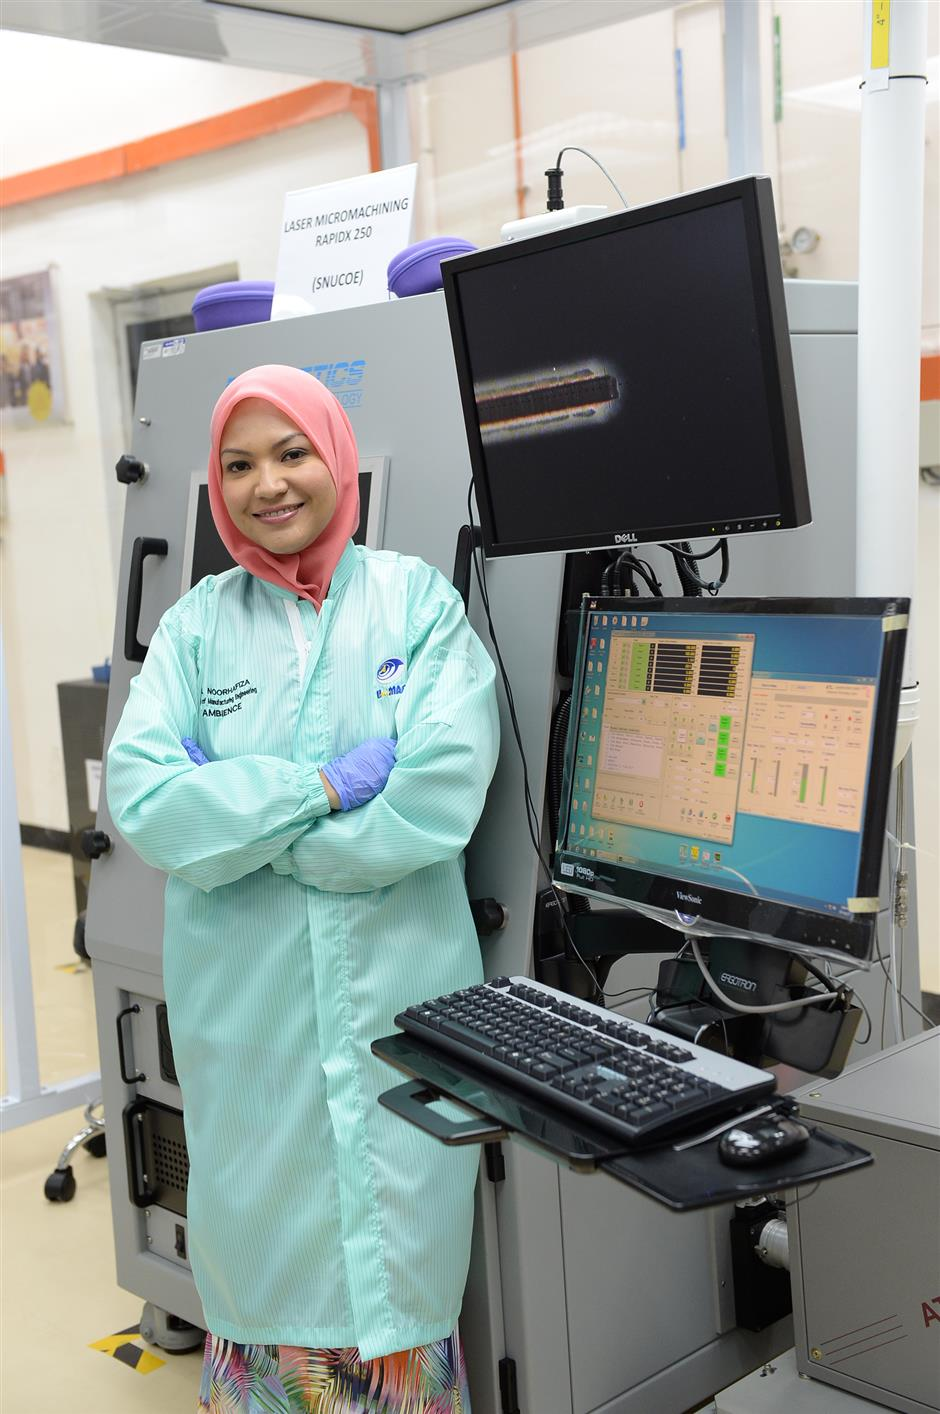 Saving lives: Dr Noorhafiza may not be a medical doctor, but that hasn't stopped her from trying to improve the survival rate of coronary disease patients.